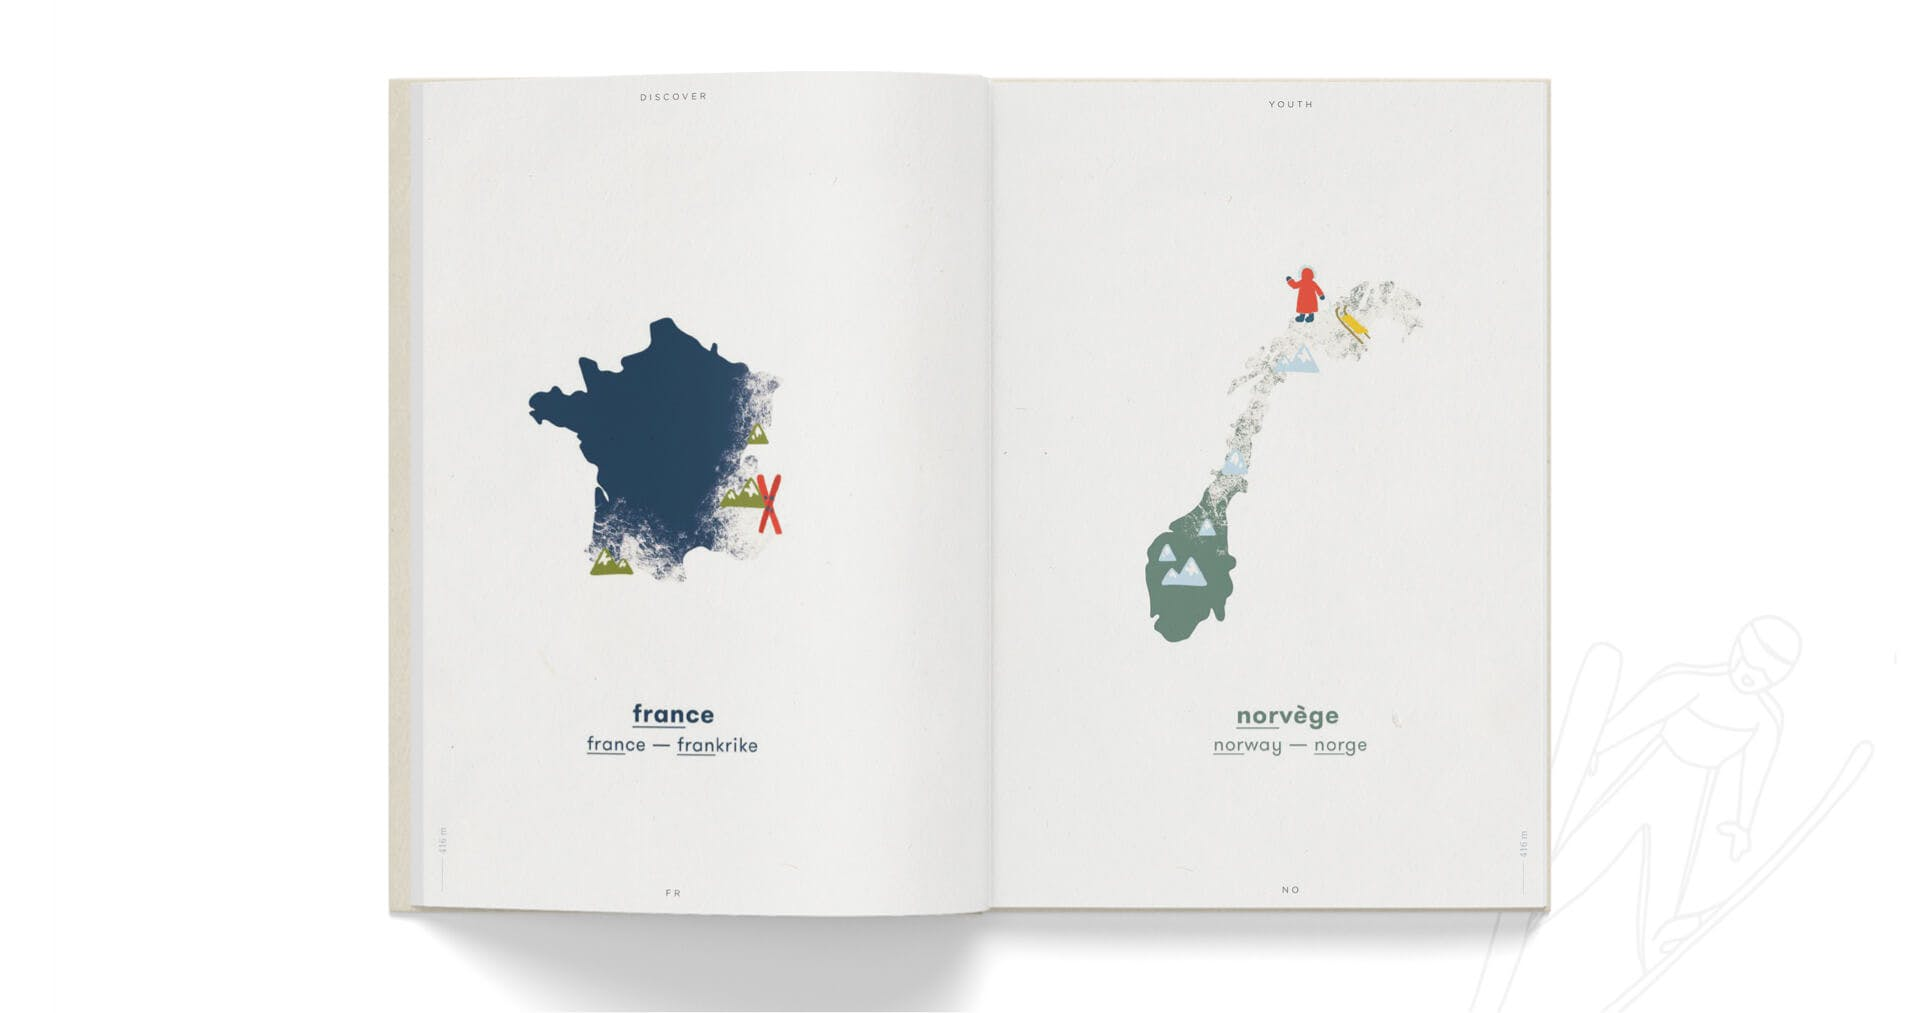 Book open on littles maps of France and Norway